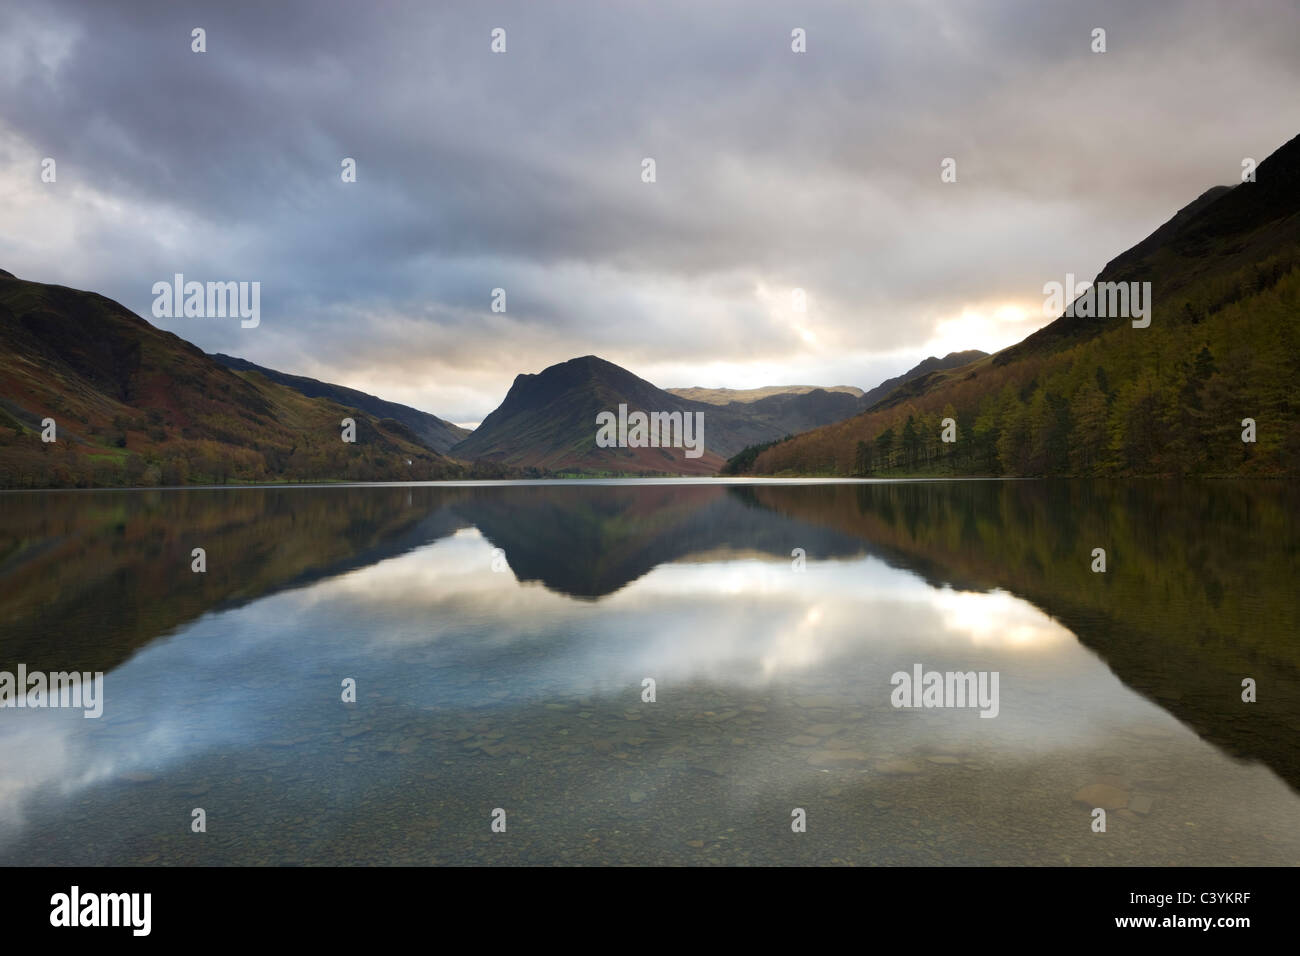 Lake Buttermere and Fleetwith Pike, Lake District National Park, Cumbria, England. Autumn (November) 2009. - Stock Image